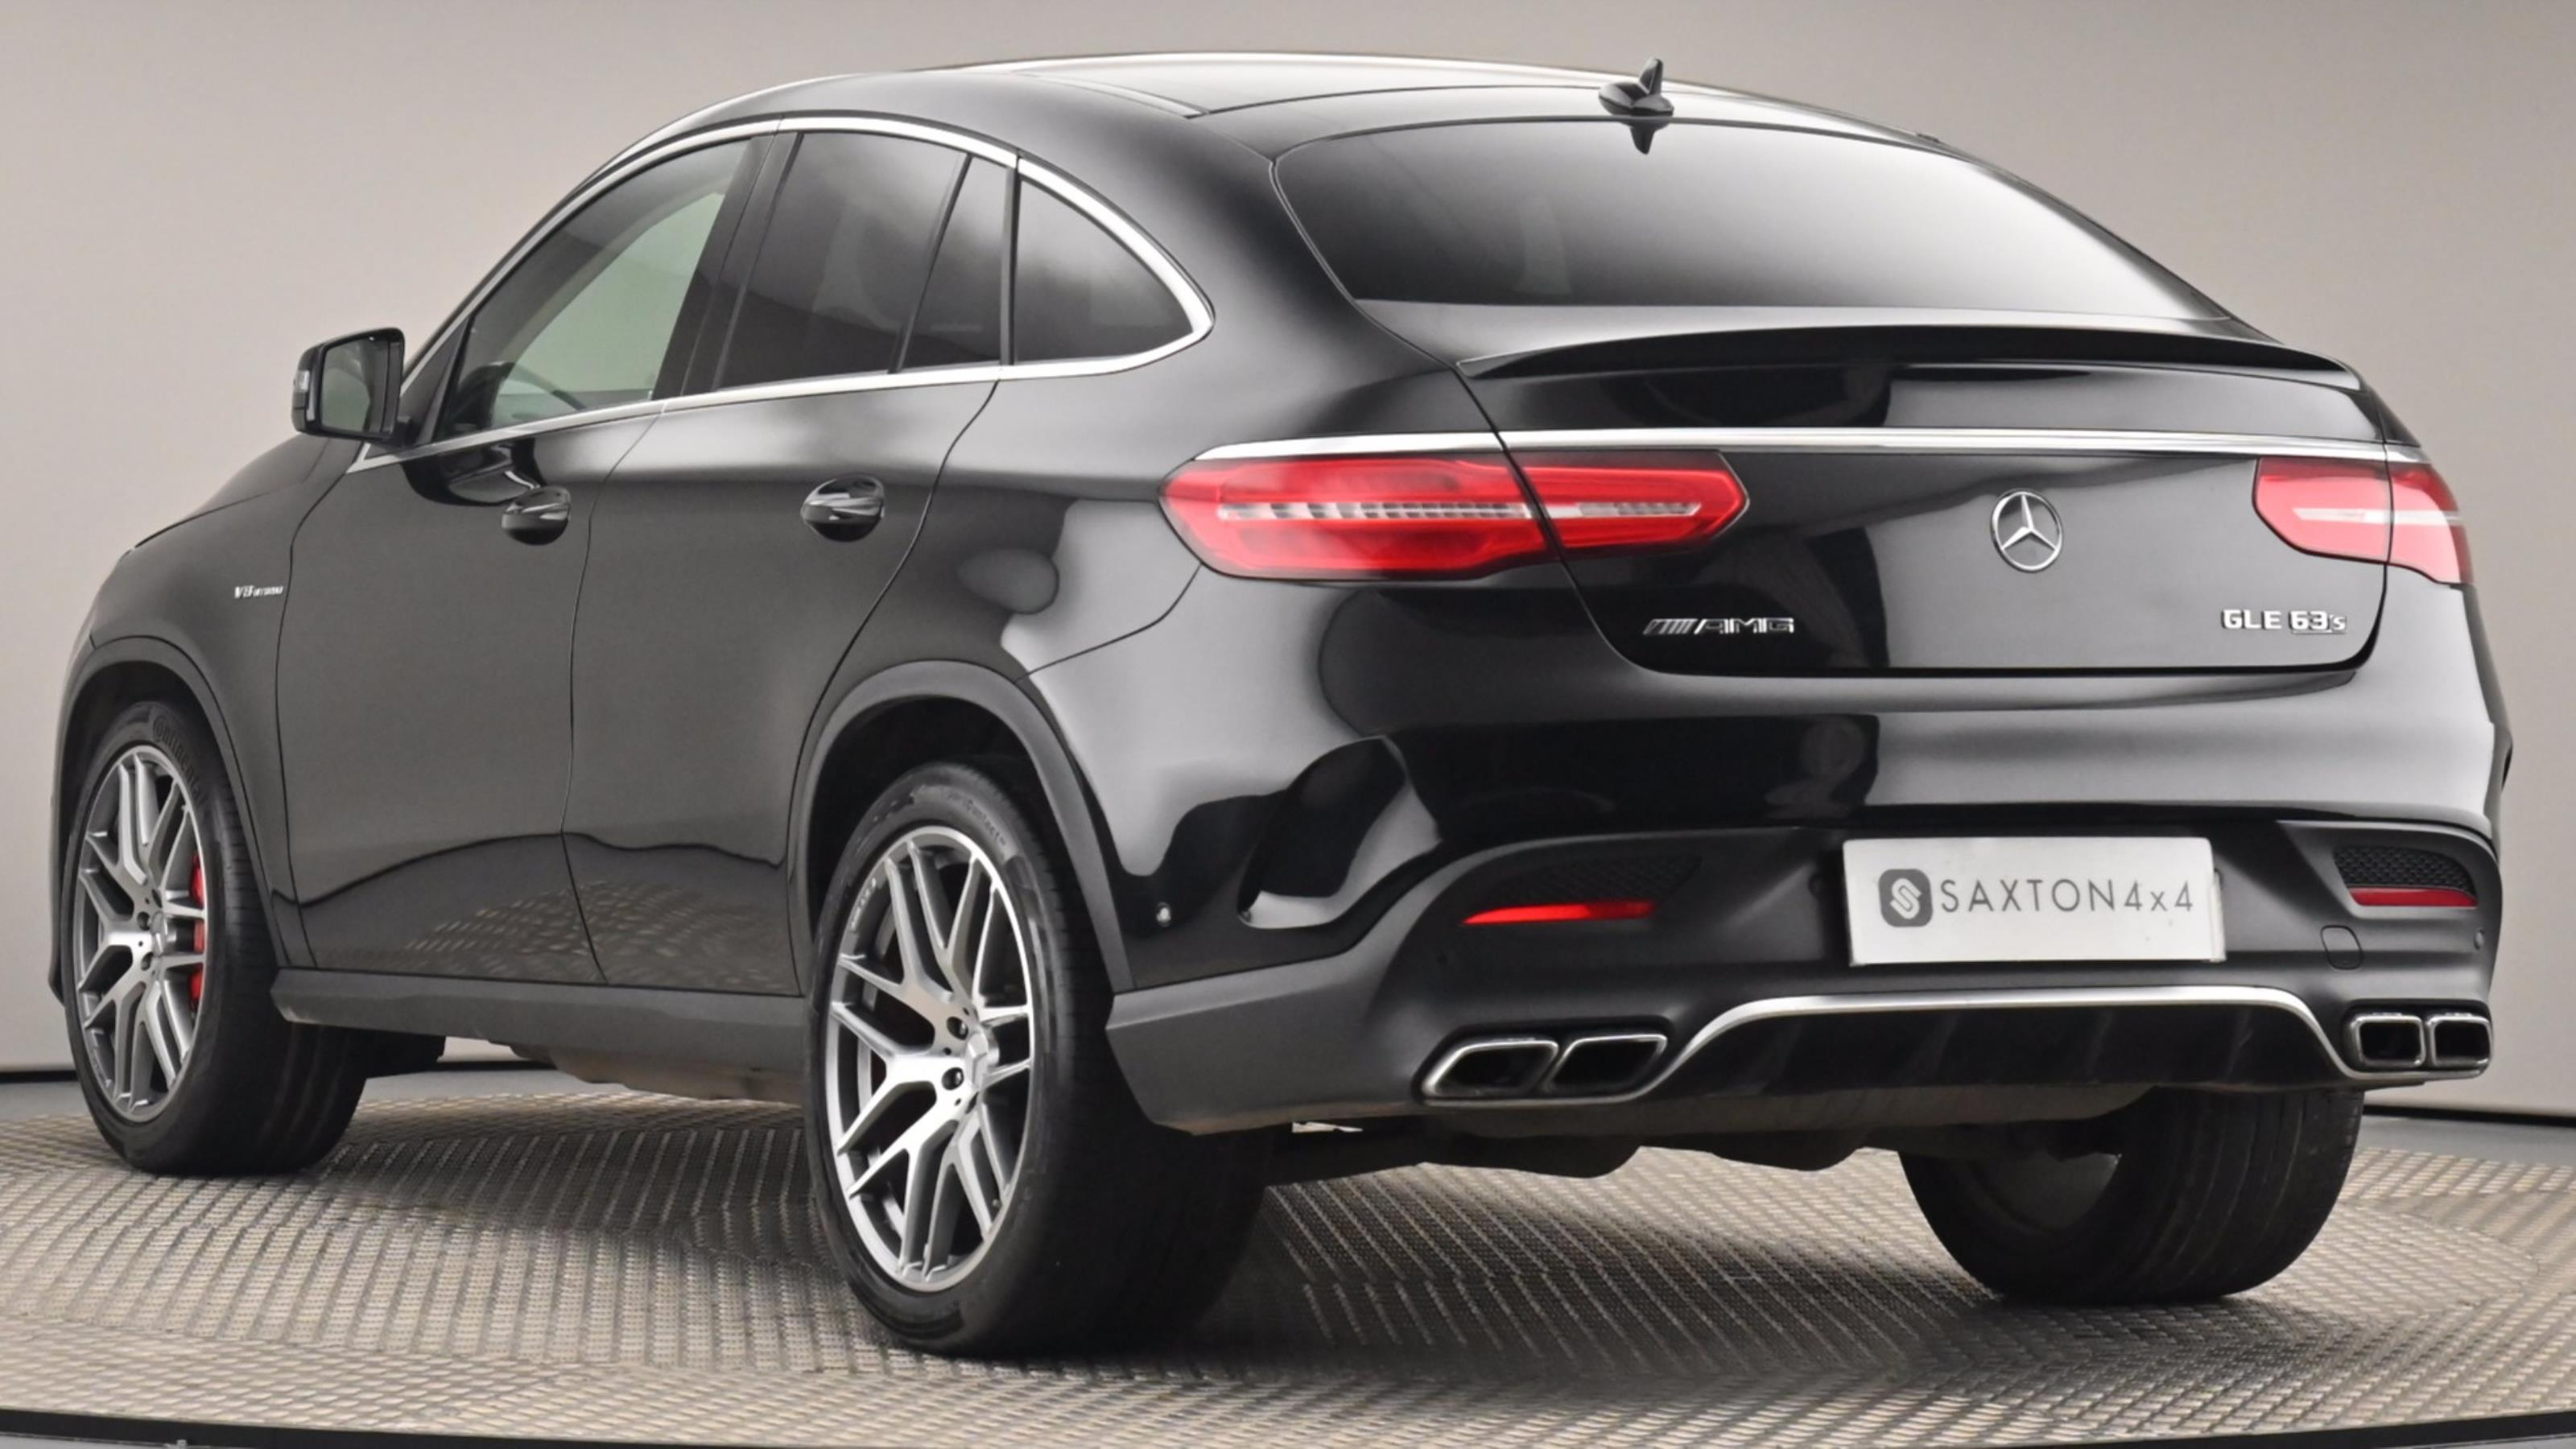 Used 2017 Mercedes-Benz GLE COUPE GLE 63 S 4Matic 5dr 7G-Tronic BLACK at Saxton4x4